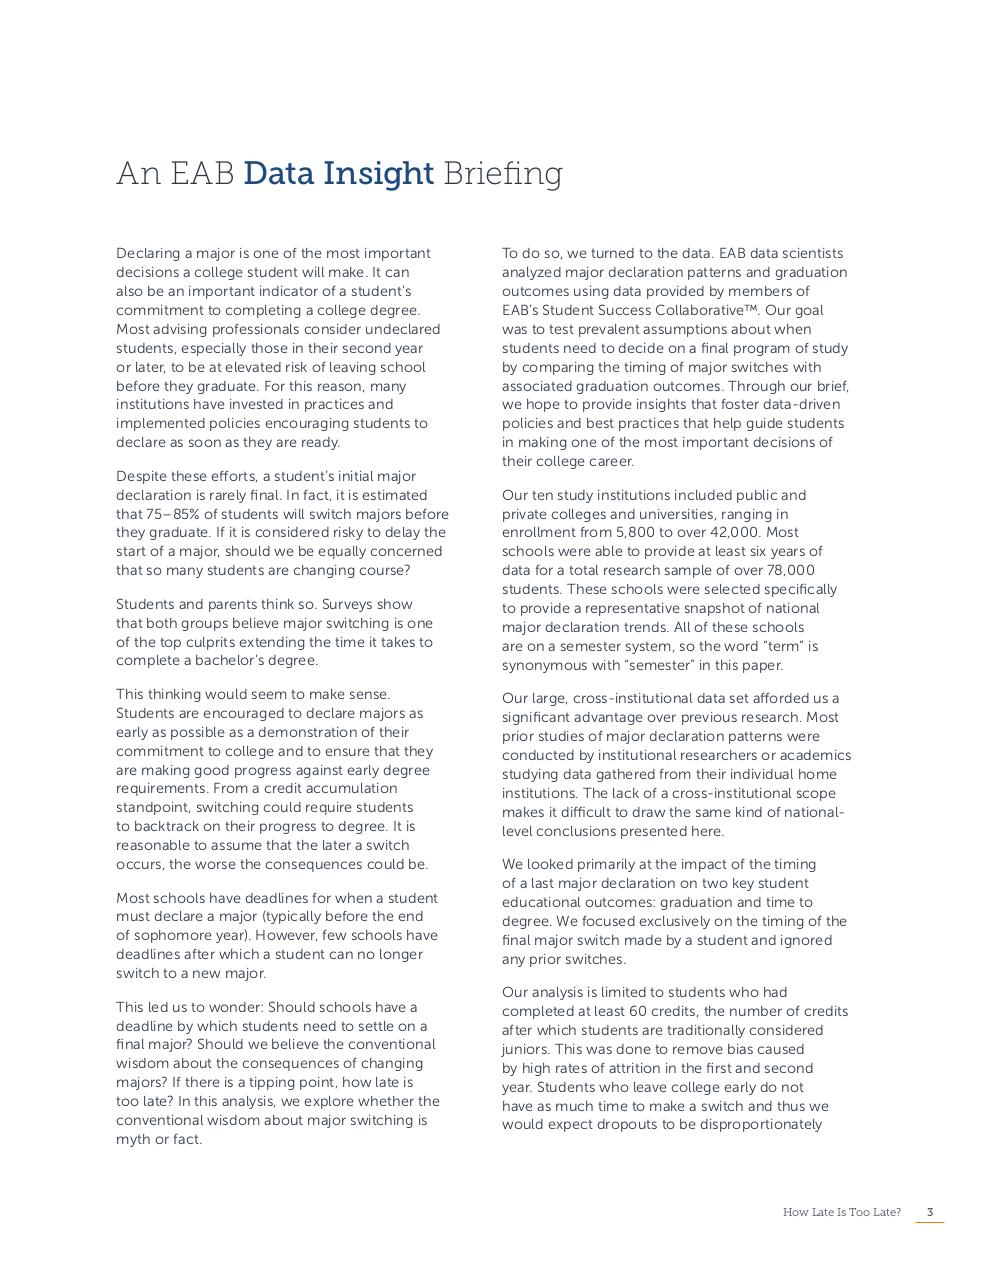 EAB_Major Switching Myths and Facts.pdf - page 3/10